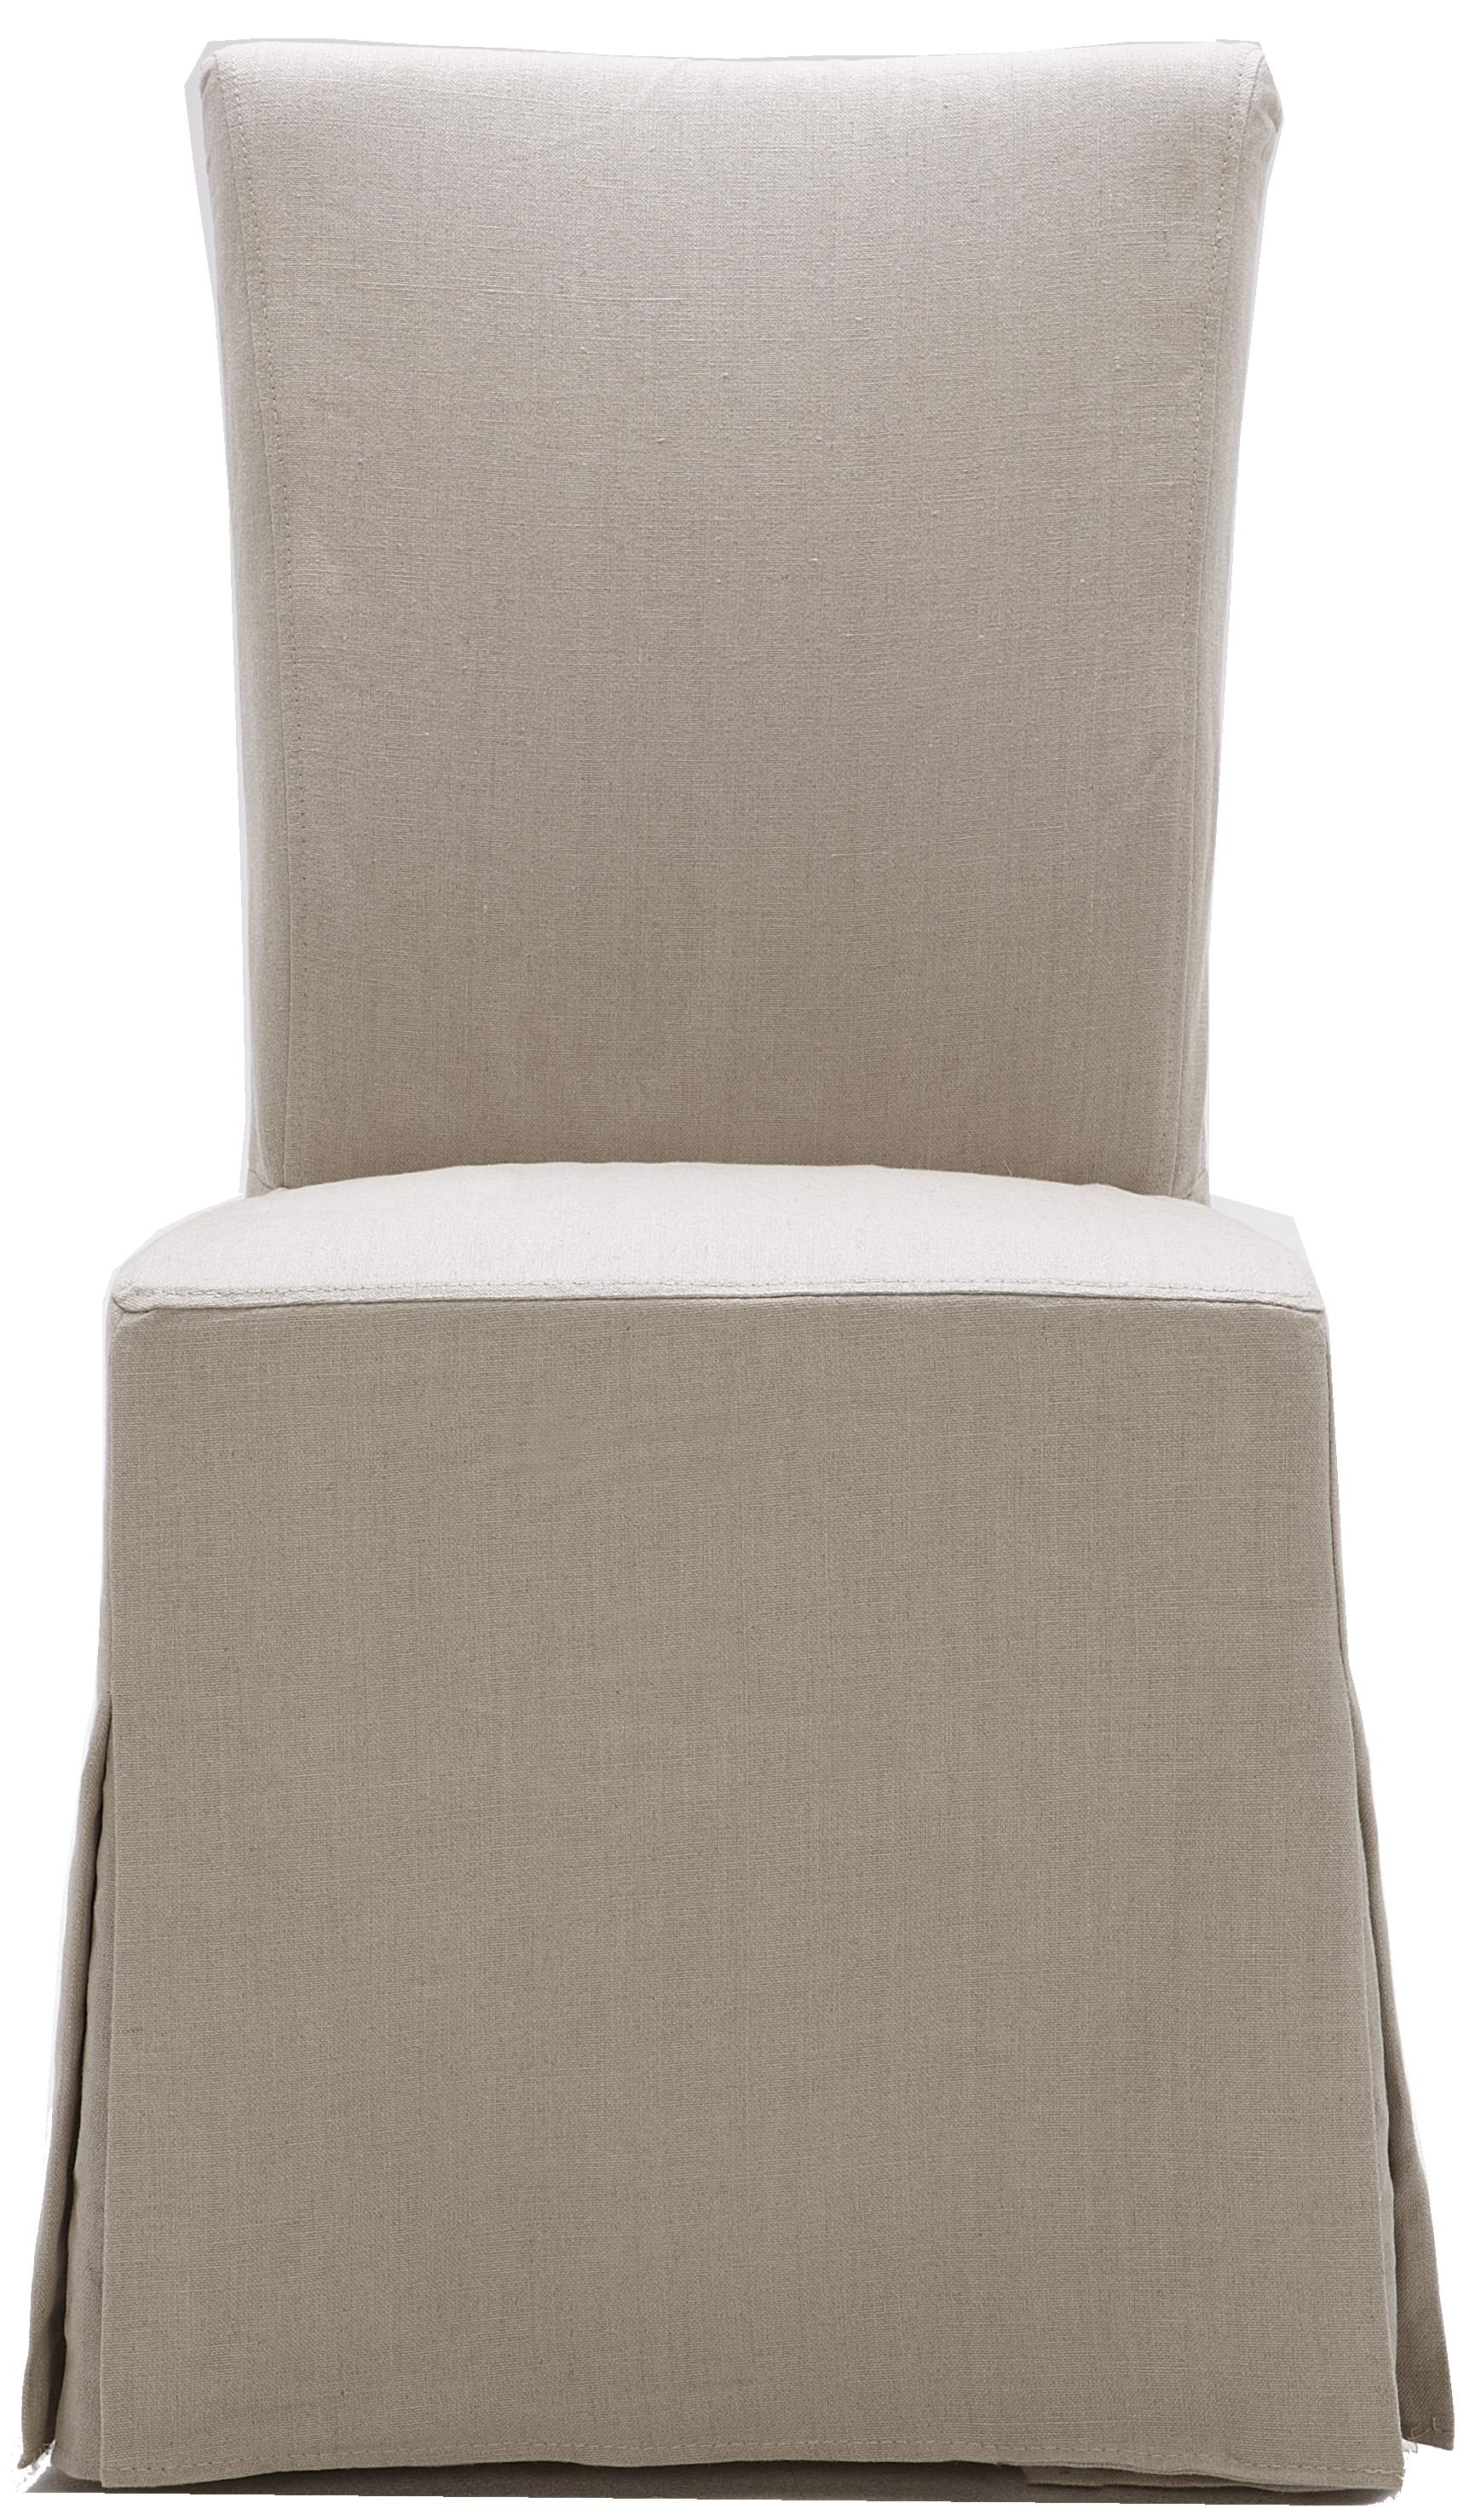 Urban Evolution Urban Dining Chairs Gabi Slipcover Parsons Chair - Item Number: Y-893-C-250